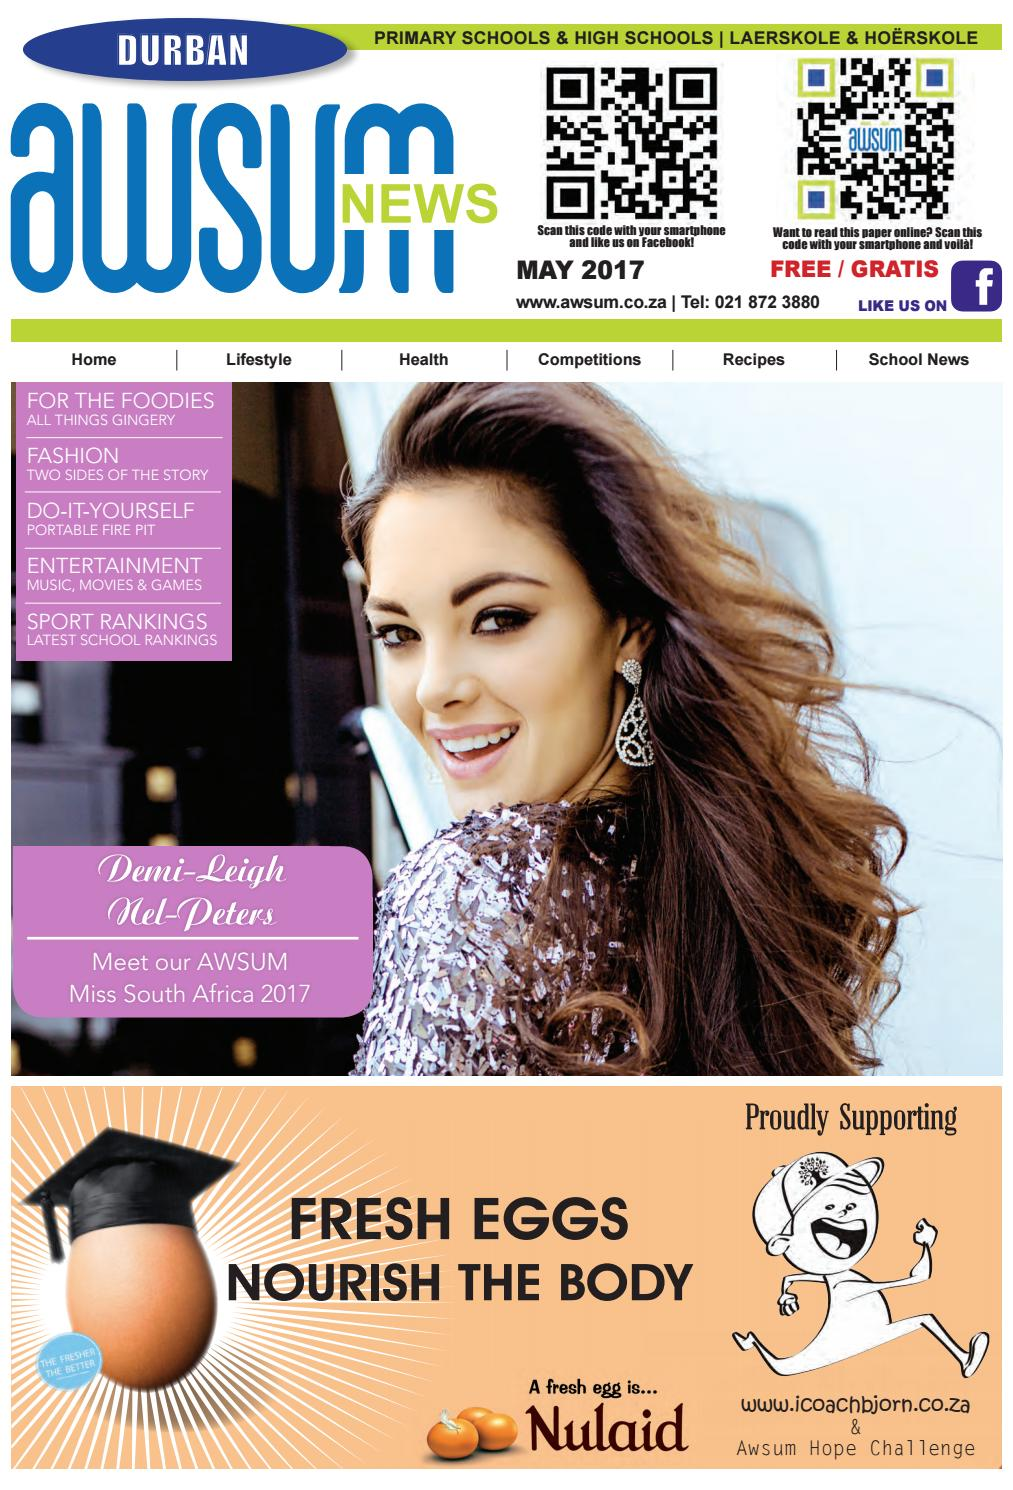 Durban may 2017 primary high schools by awsum news issuu solutioingenieria Image collections